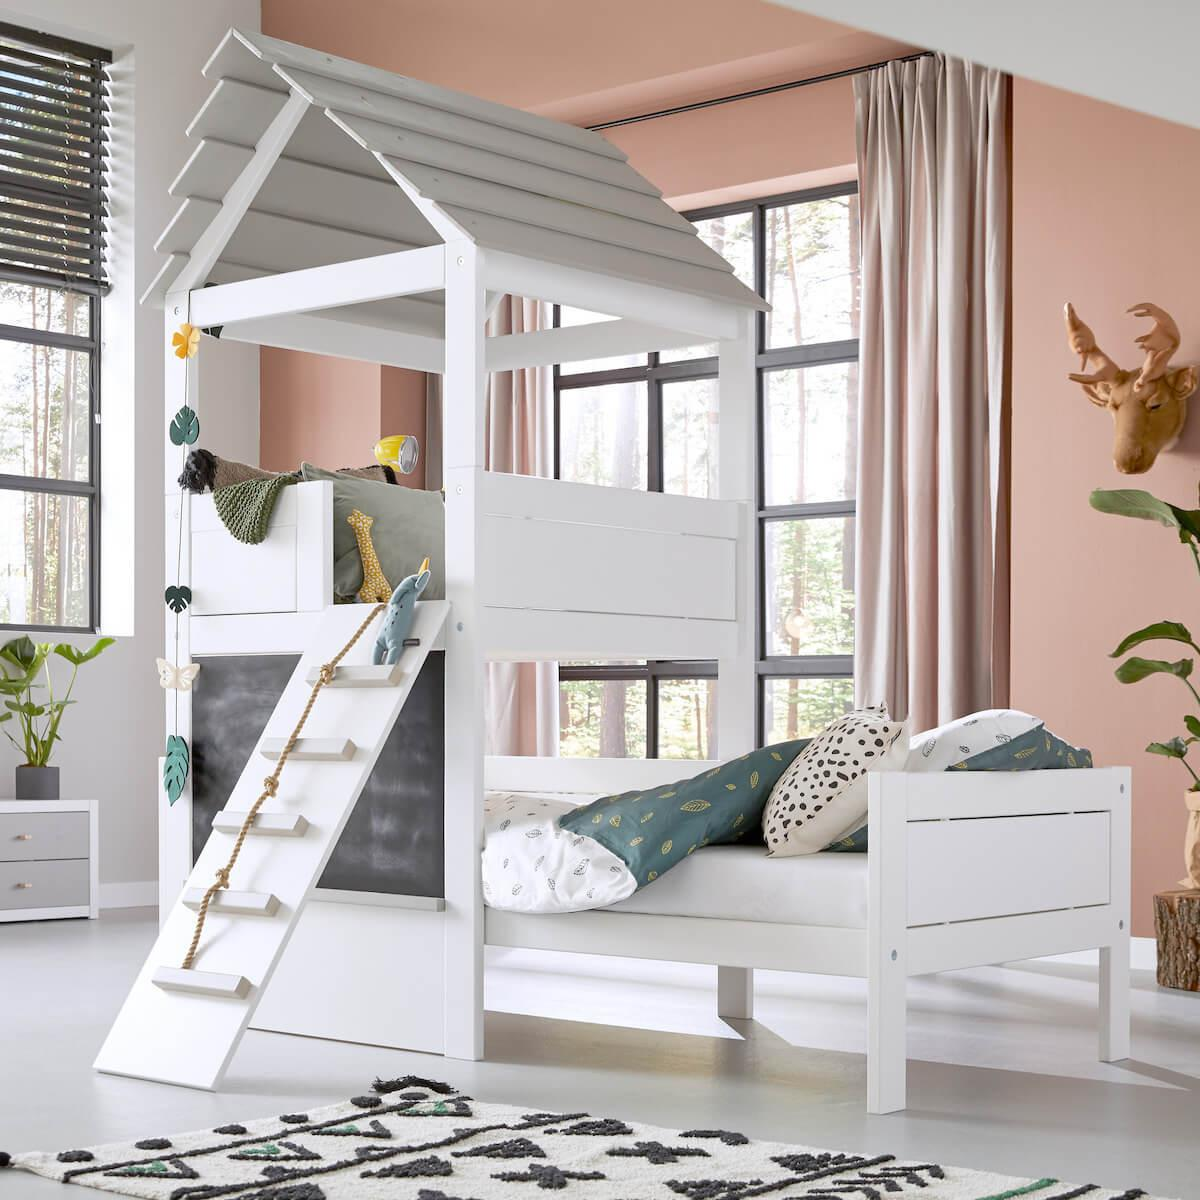 Cama individual PLAY TOWER Lifetime white-grey wash